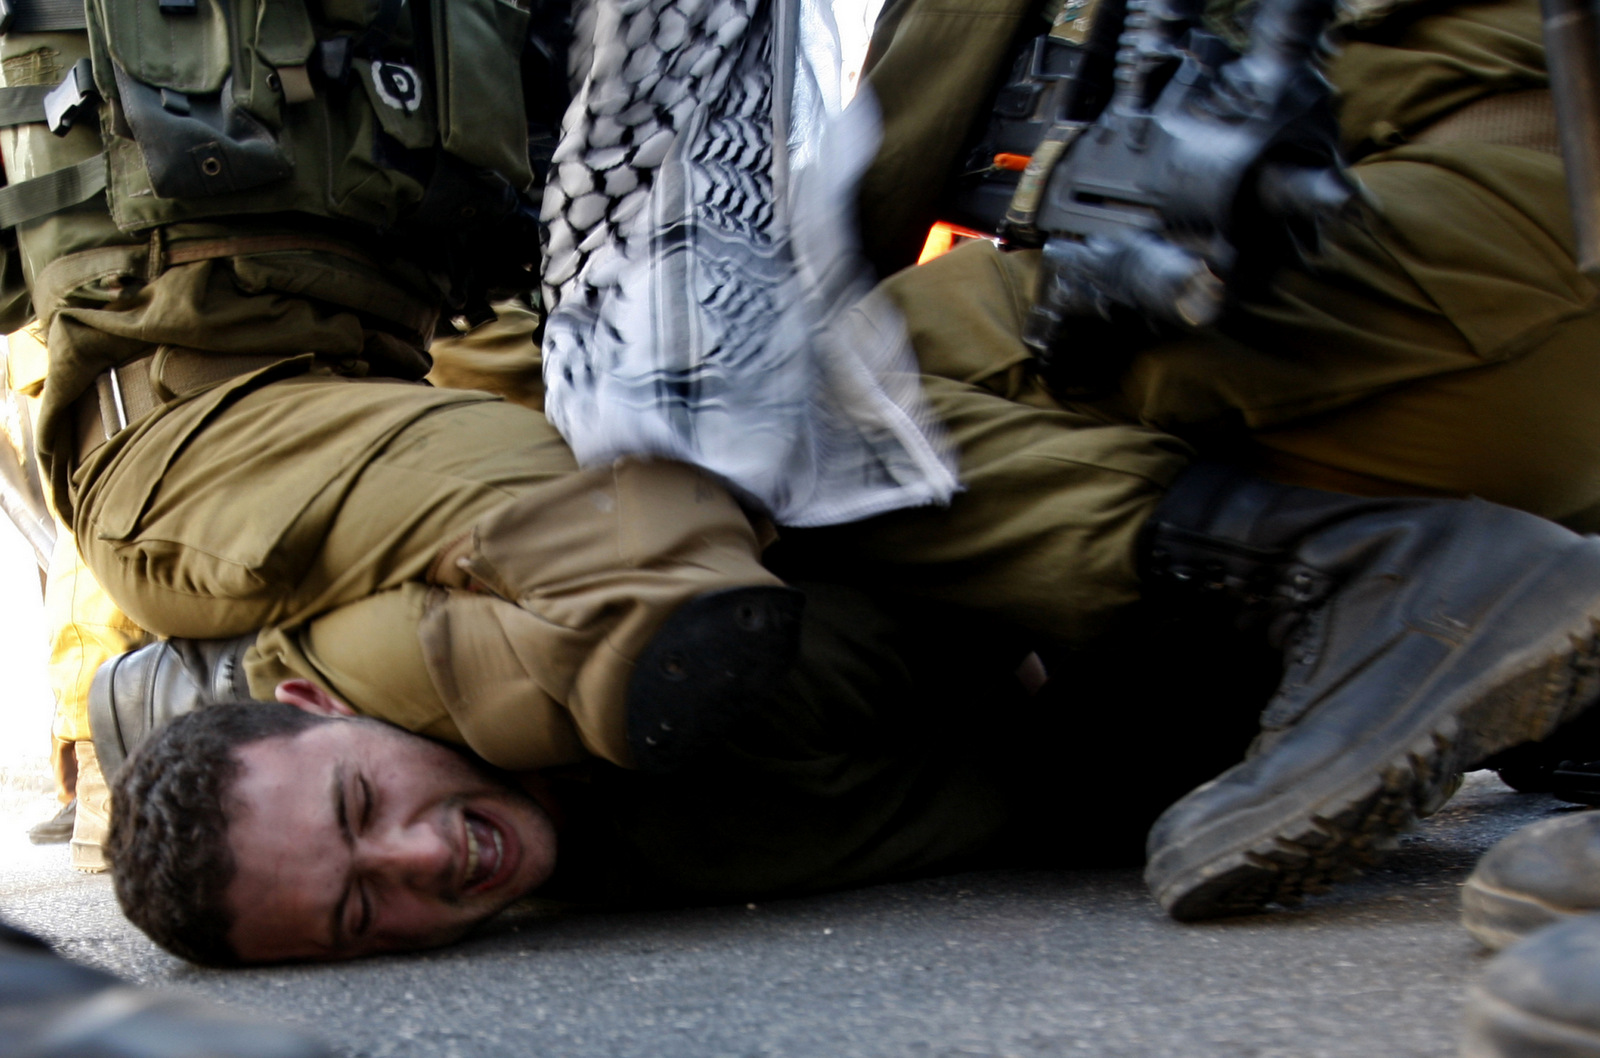 A Palestinians activist is detained by Israeli soldiers during a protest against the Prawer Plan to resettle Israel's Palestinian Bedouin minority near the Israeli settlement of Bet El, north of Ramallah, Nov. 30, 2013. (AP/Majdi Mohammed)